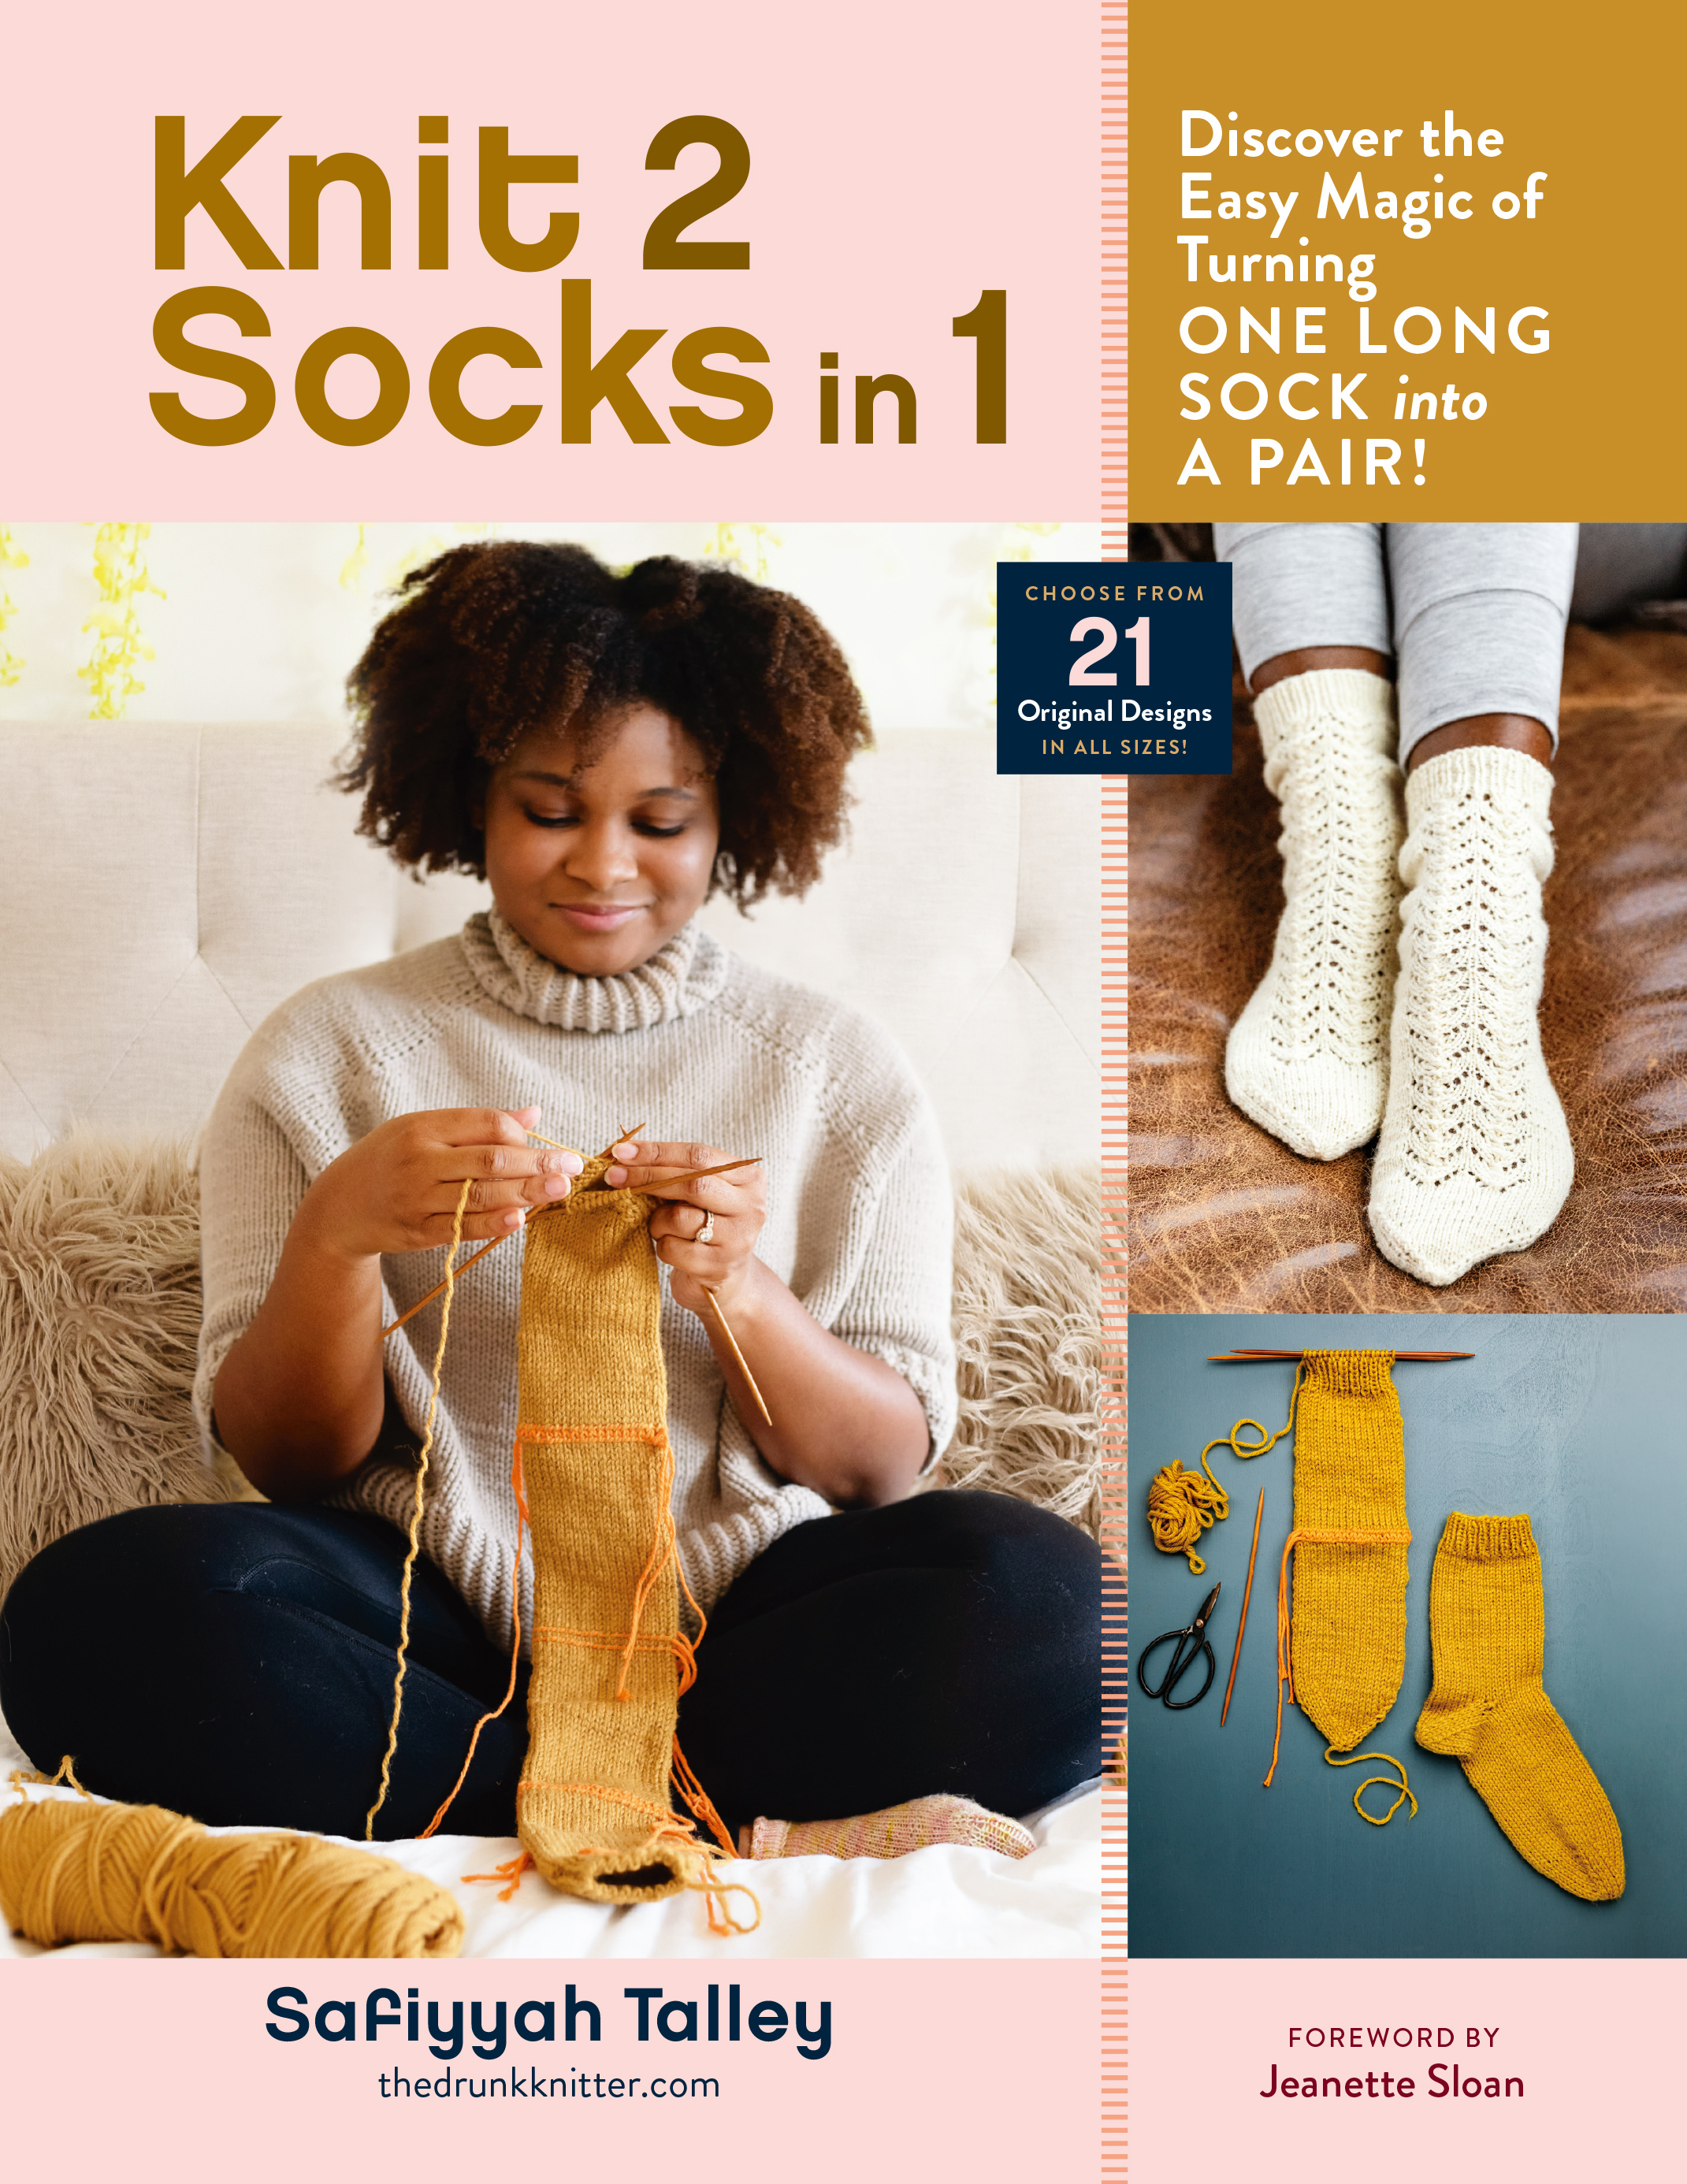 Knit 2 Socks in 1 Discover the Easy Magic of Turning One Long Sock into a Pair! Choose from 21 Original Designs, in All Sizes - Safiyyah Talley